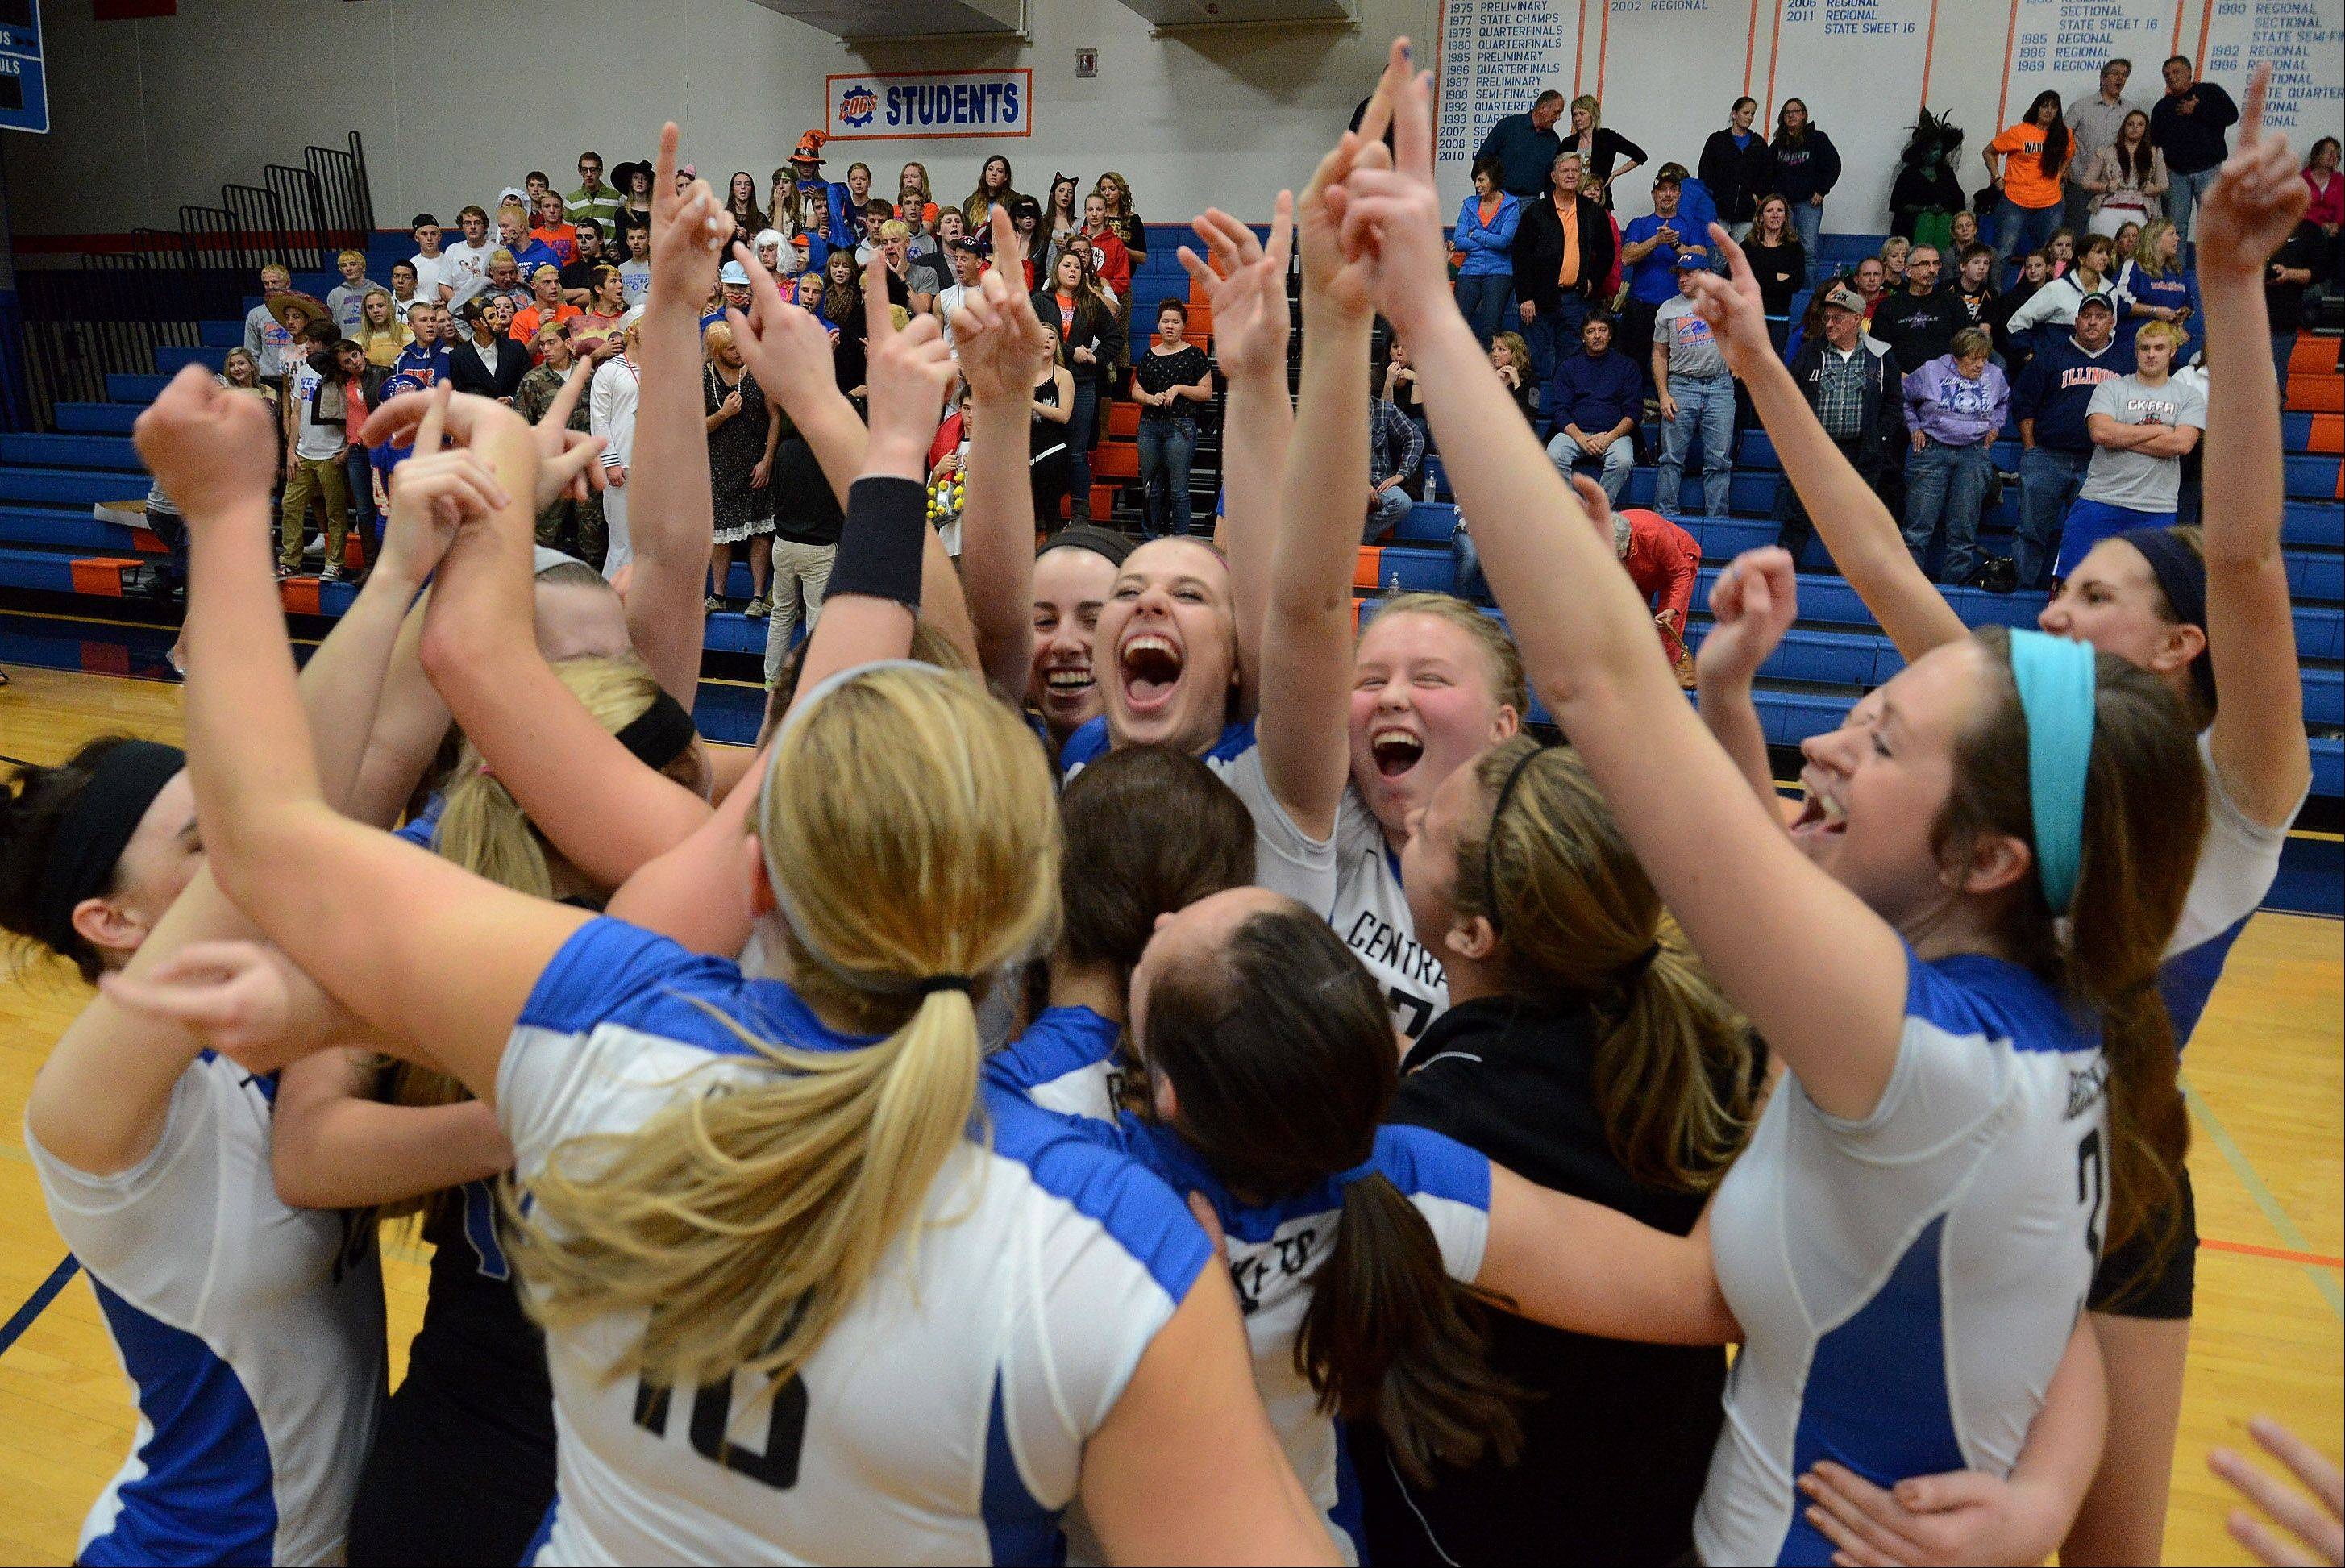 Burlington Central celebrates after defeating Genoa-Kingston in Thursday's Class 3A volleyball regional finals.